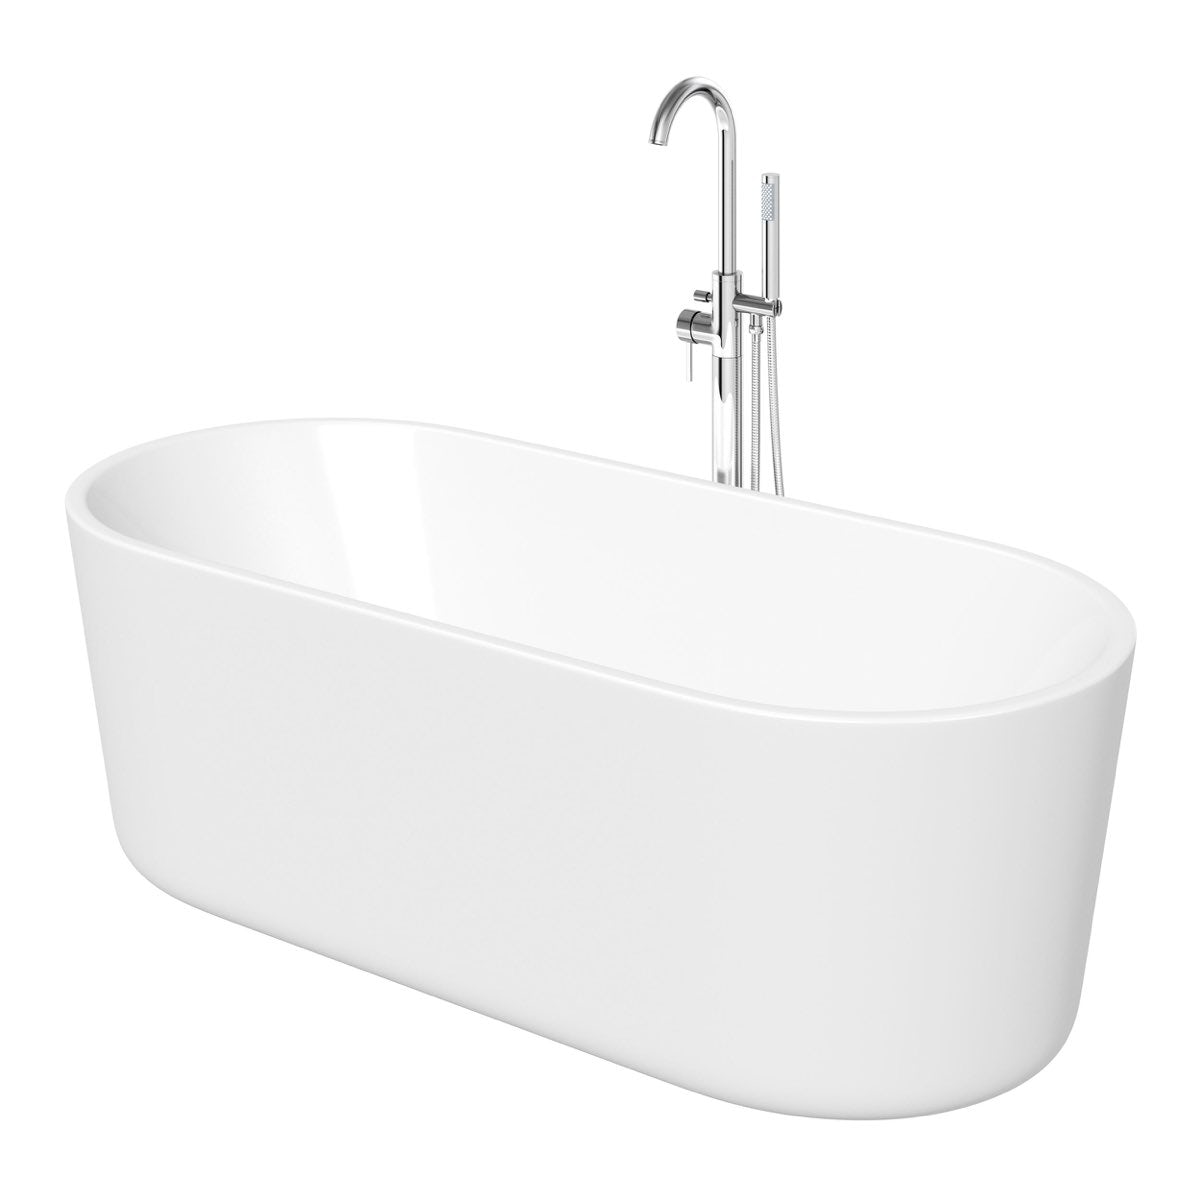 Arte 2 Freestanding Bath Small